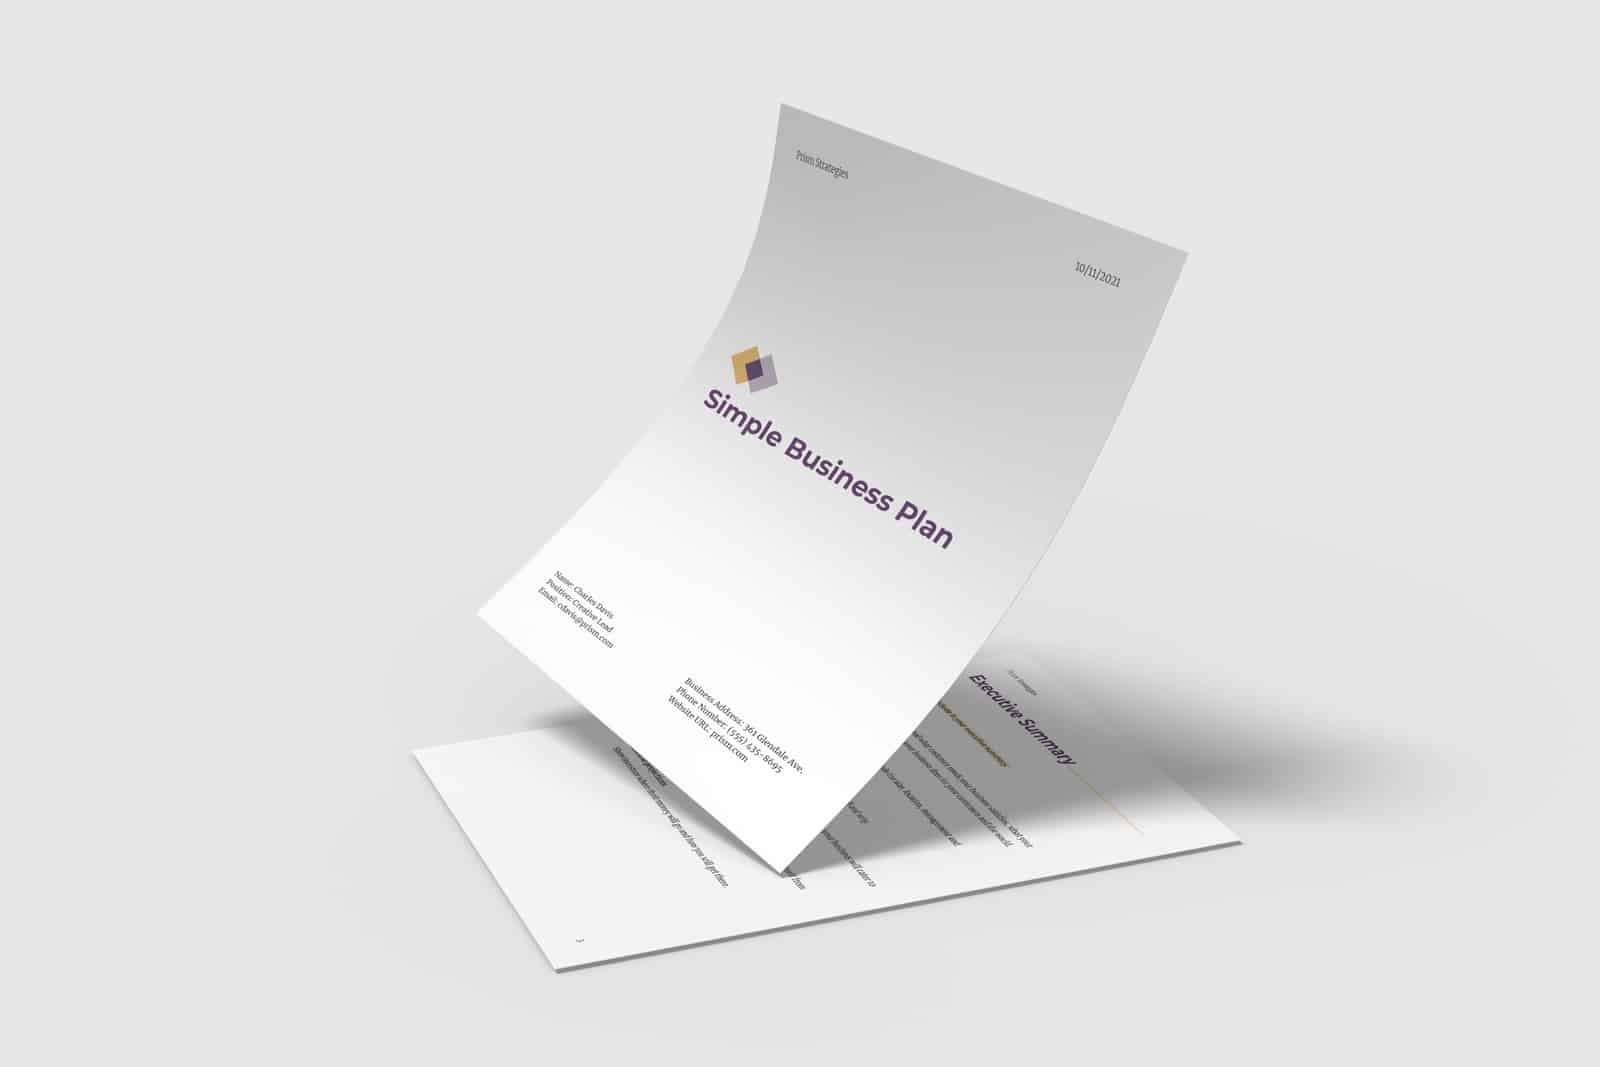 Simple business plan template preview